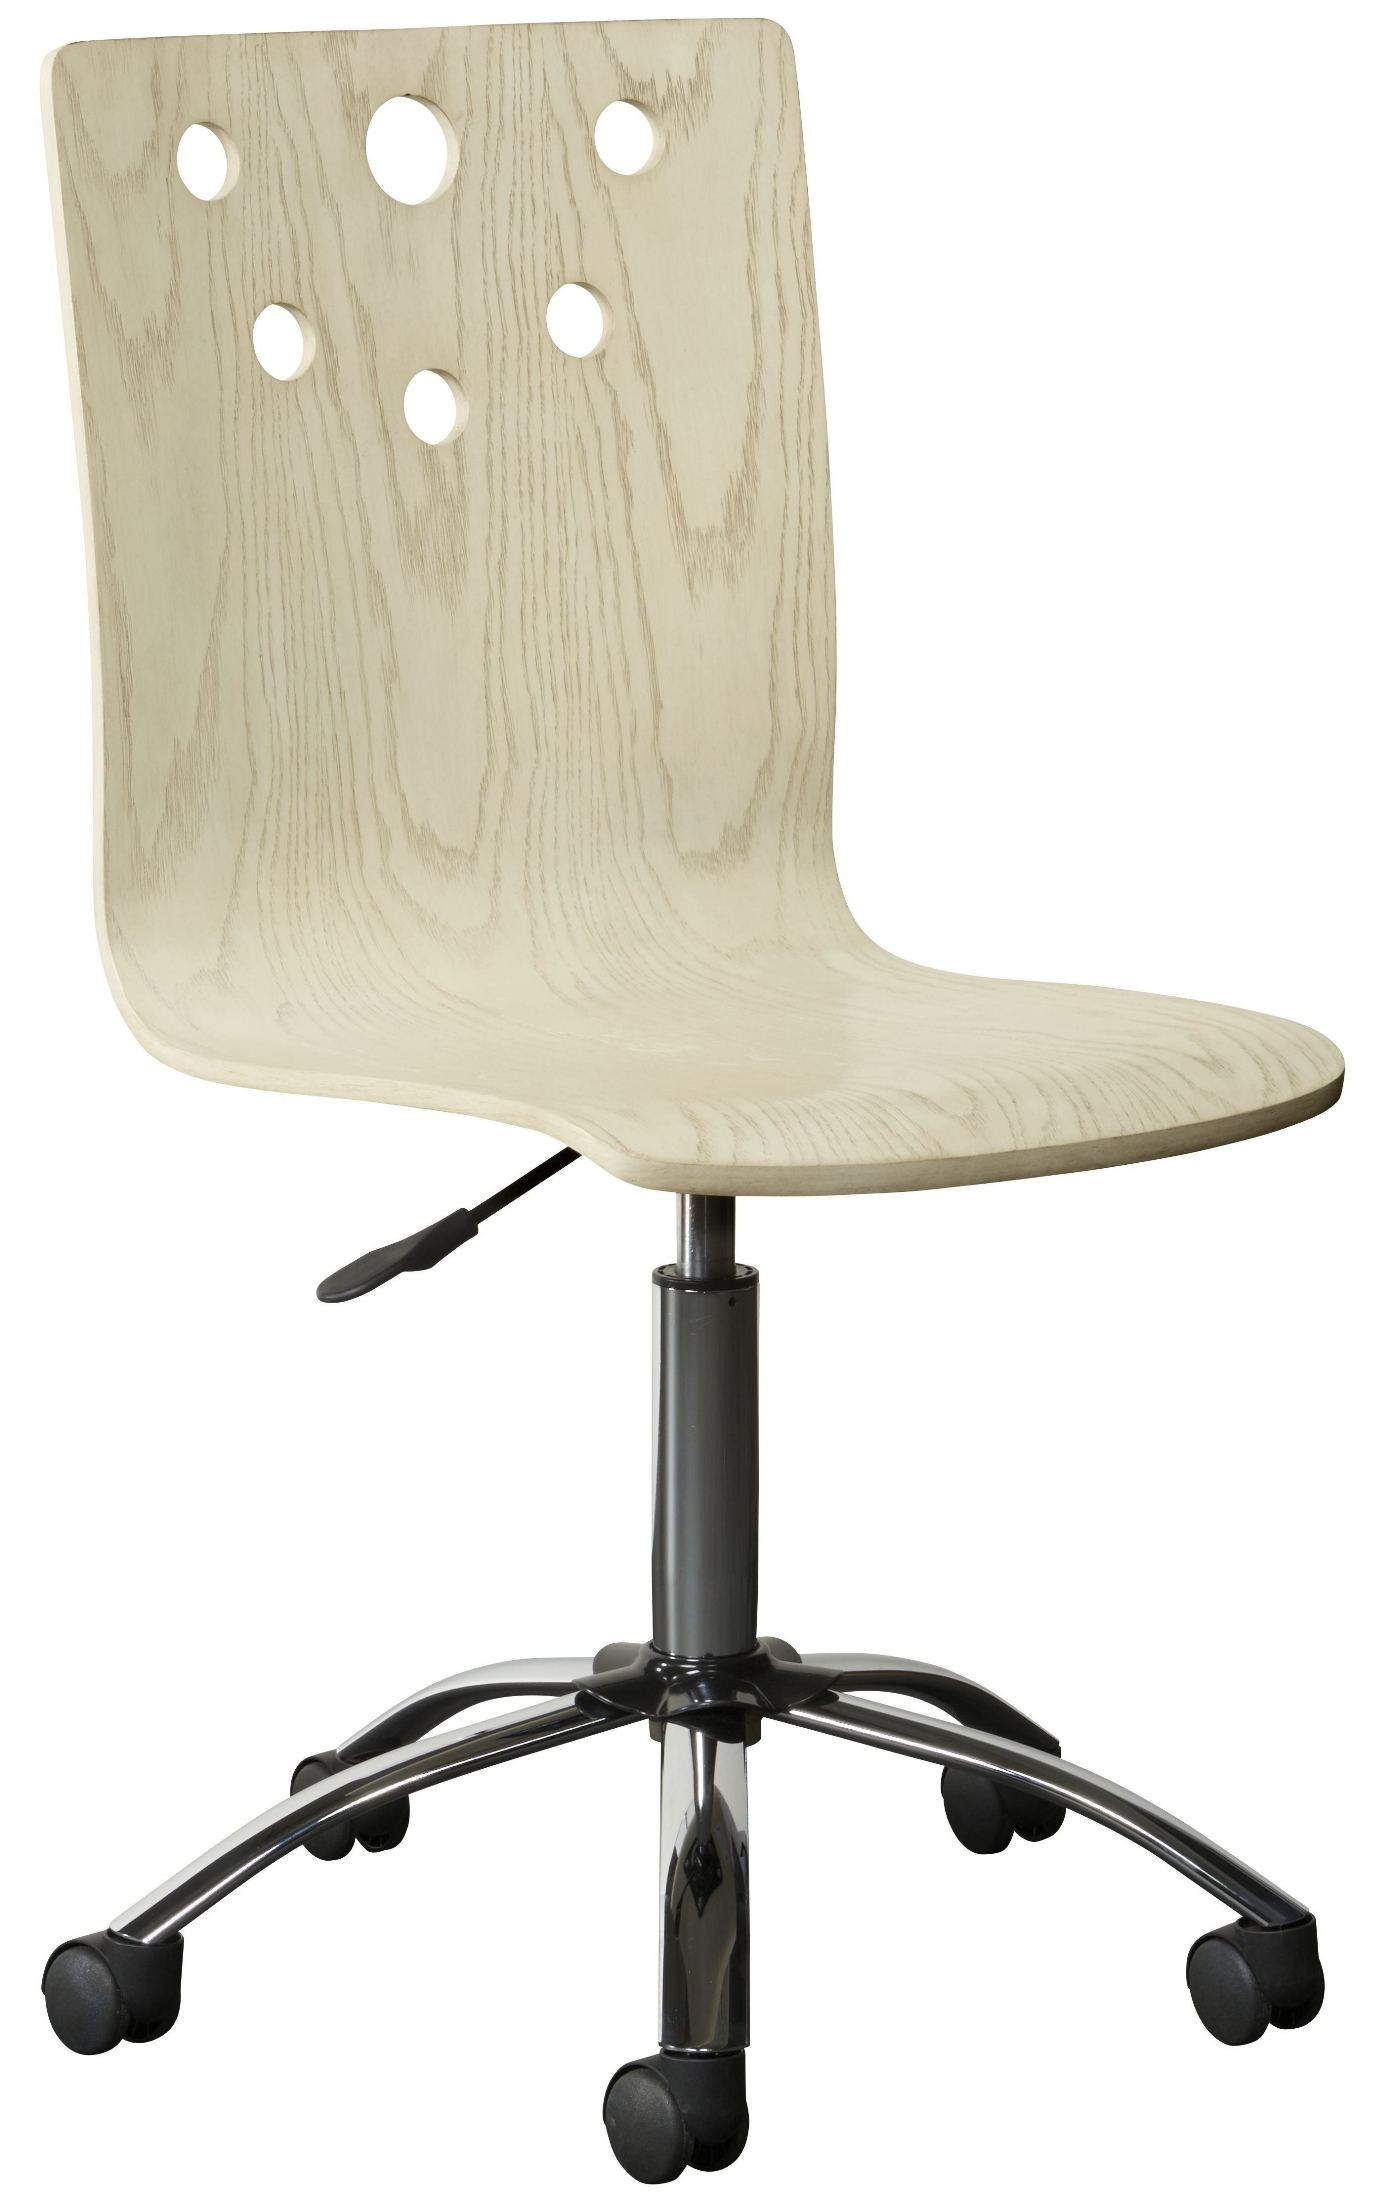 Driftwood Park Vanilla Oak Desk Chair from Stone and Leigh